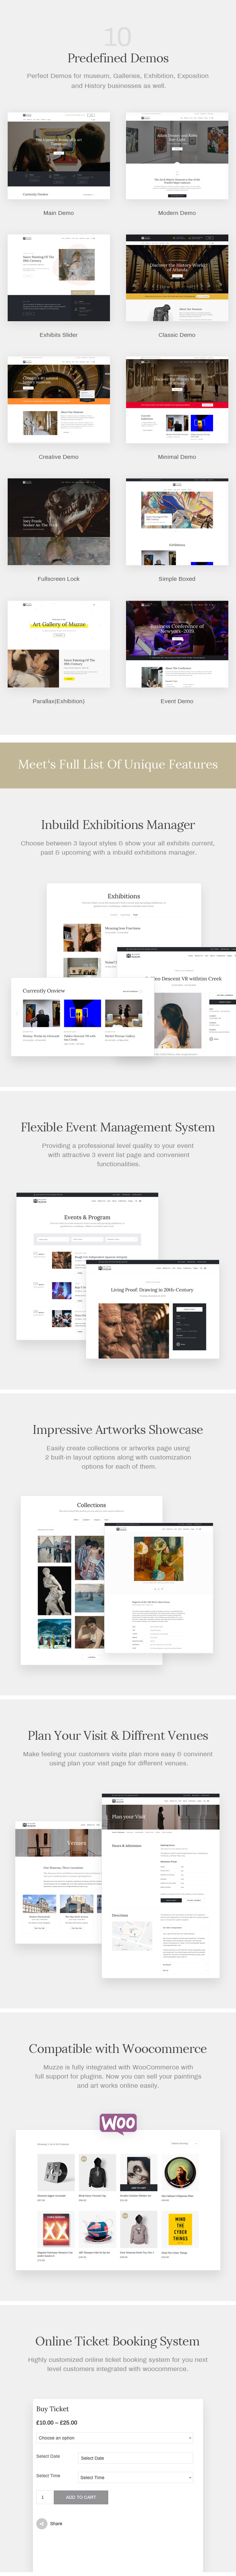 Muzze - Museum Art Gallery Exhibition WordPress Theme - 5